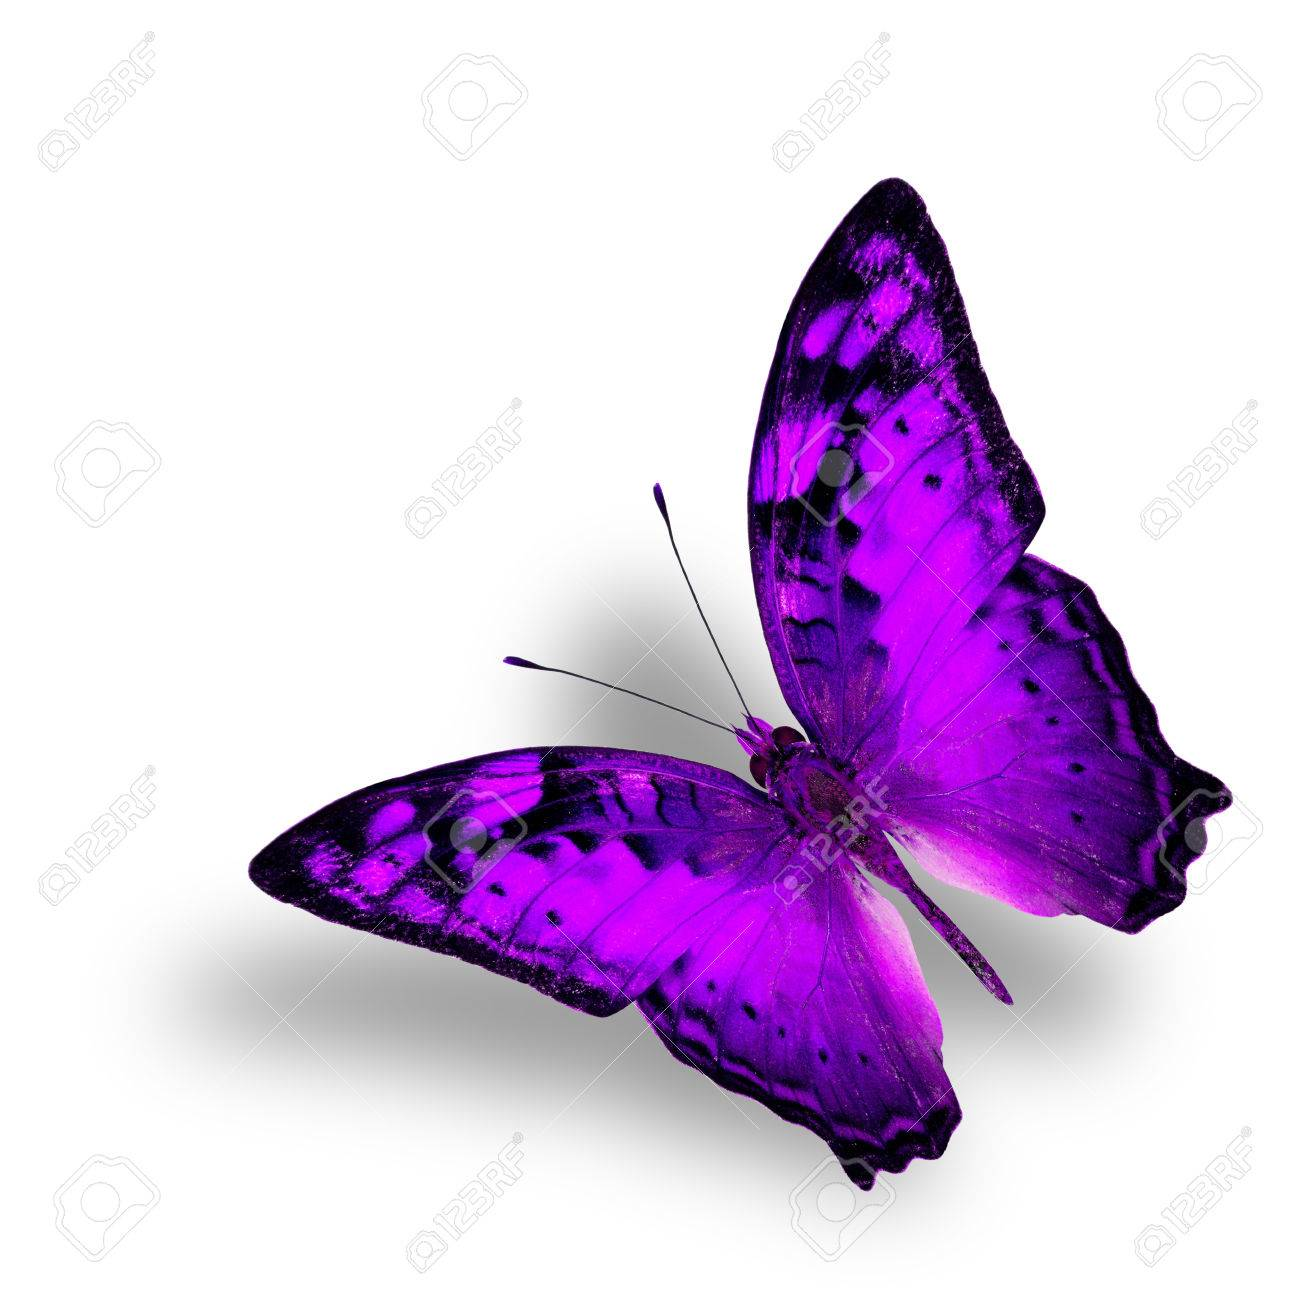 Beautiful Flying Vagrant Butterfly In Fancy Purple Color Profile Stock Photo Picture And Royalty Free Image Image 44530359